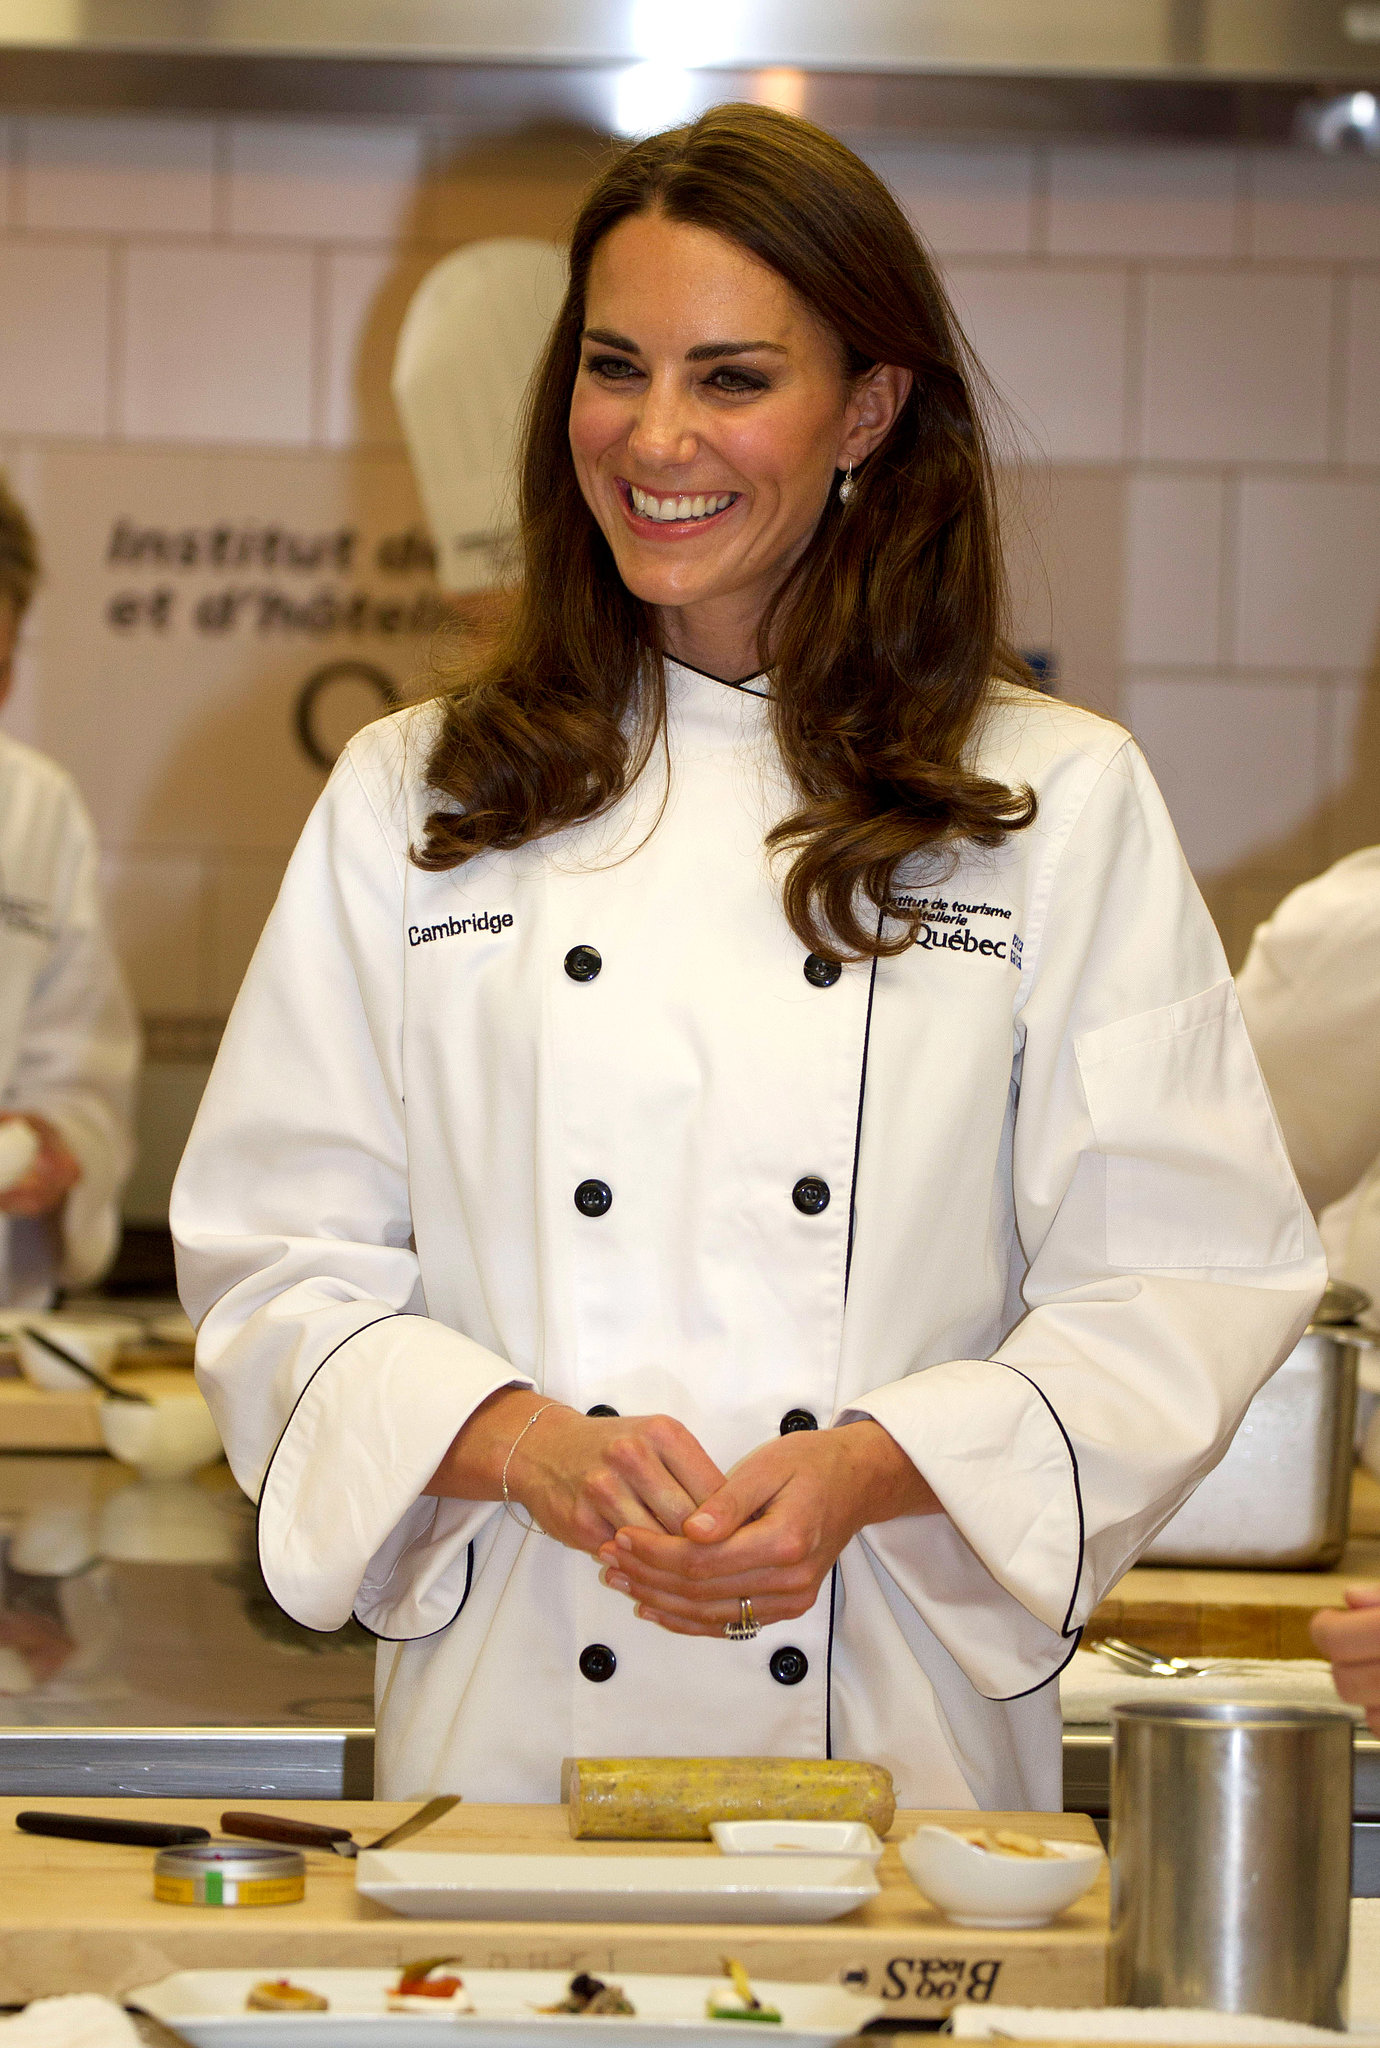 In July 2011, the duchess showed off her culinary skills during a coo